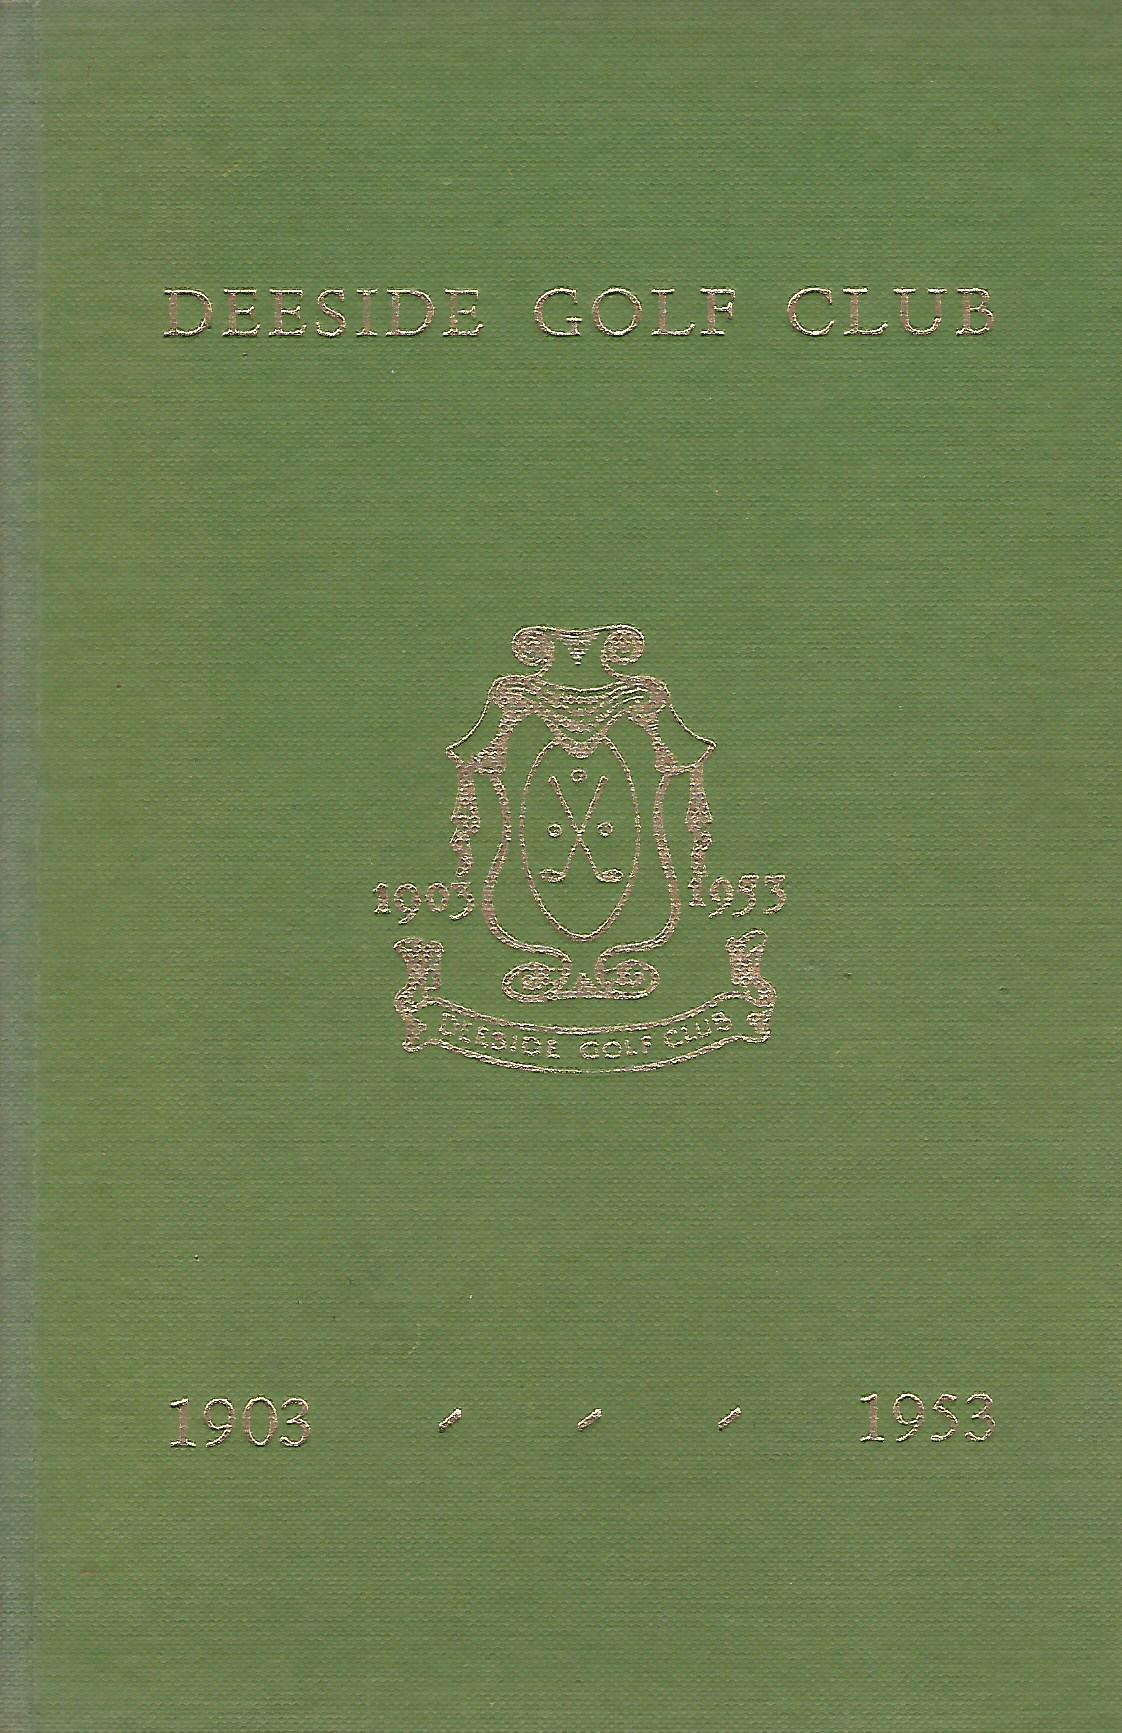 Image for Deeside Golf Club: 1903 - 1953.